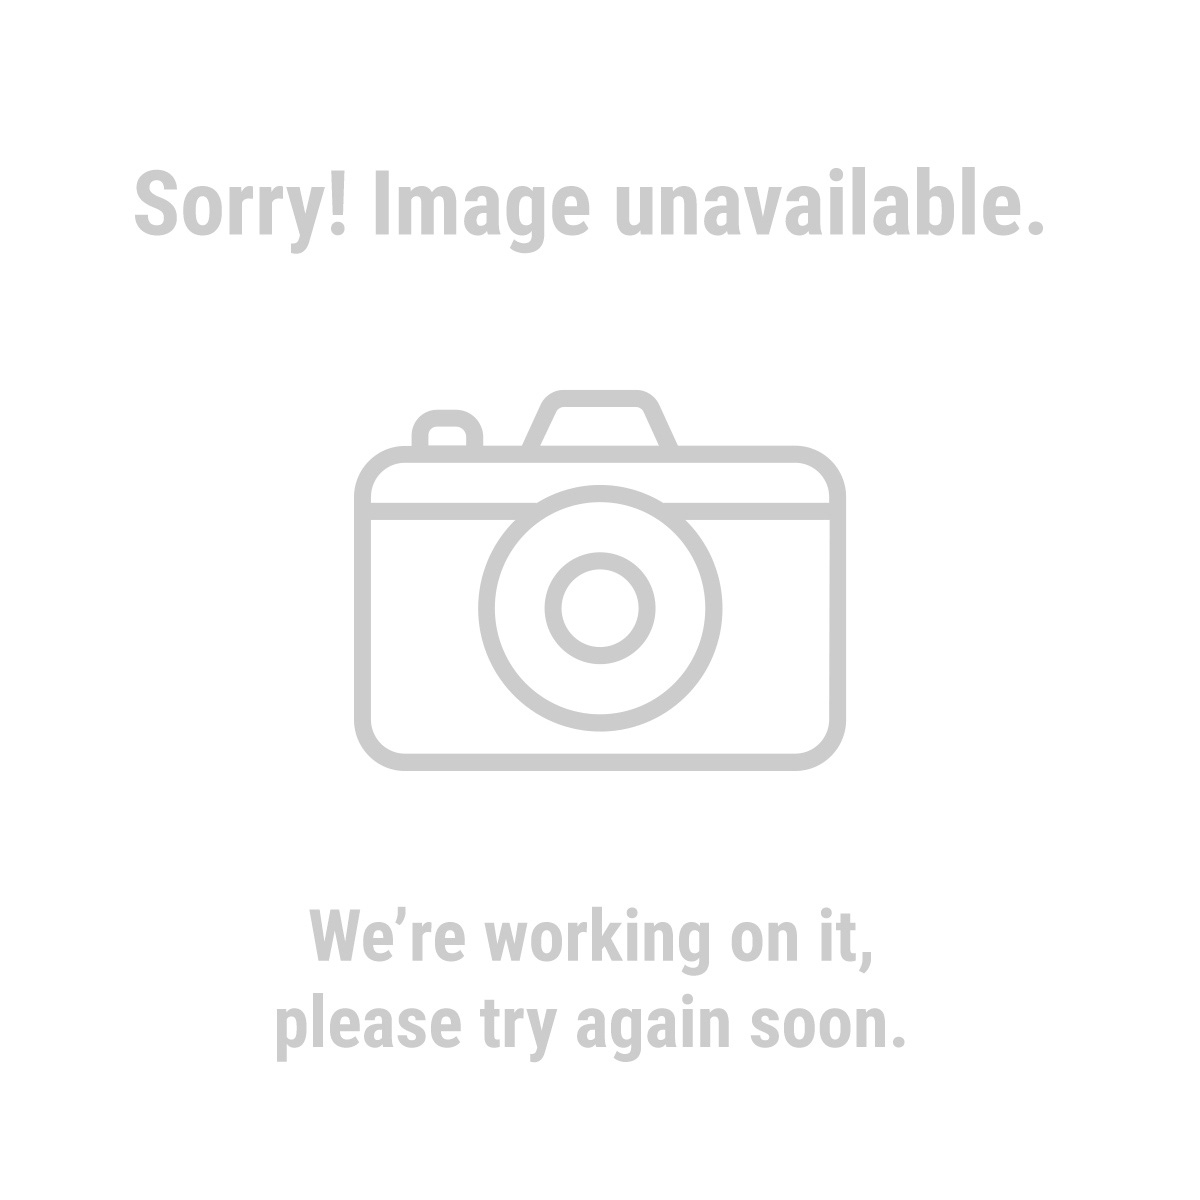 Central-Machinery 32915 750 Lb. Engine Stand